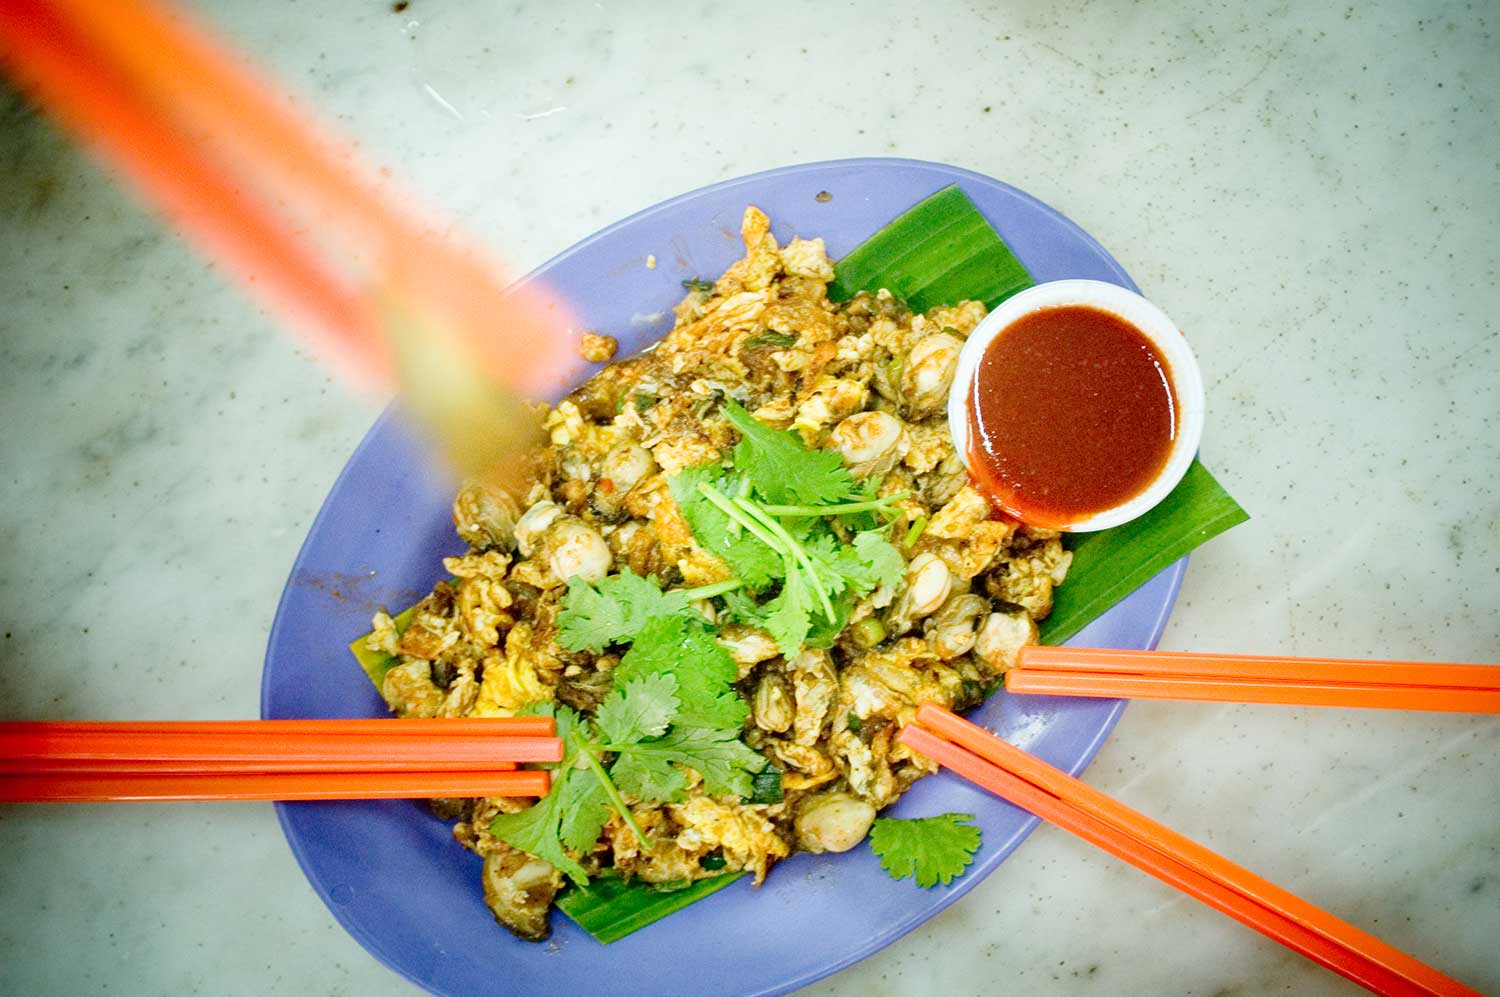 Penang's Oyster Omelette or commonly known as 'O Jian'